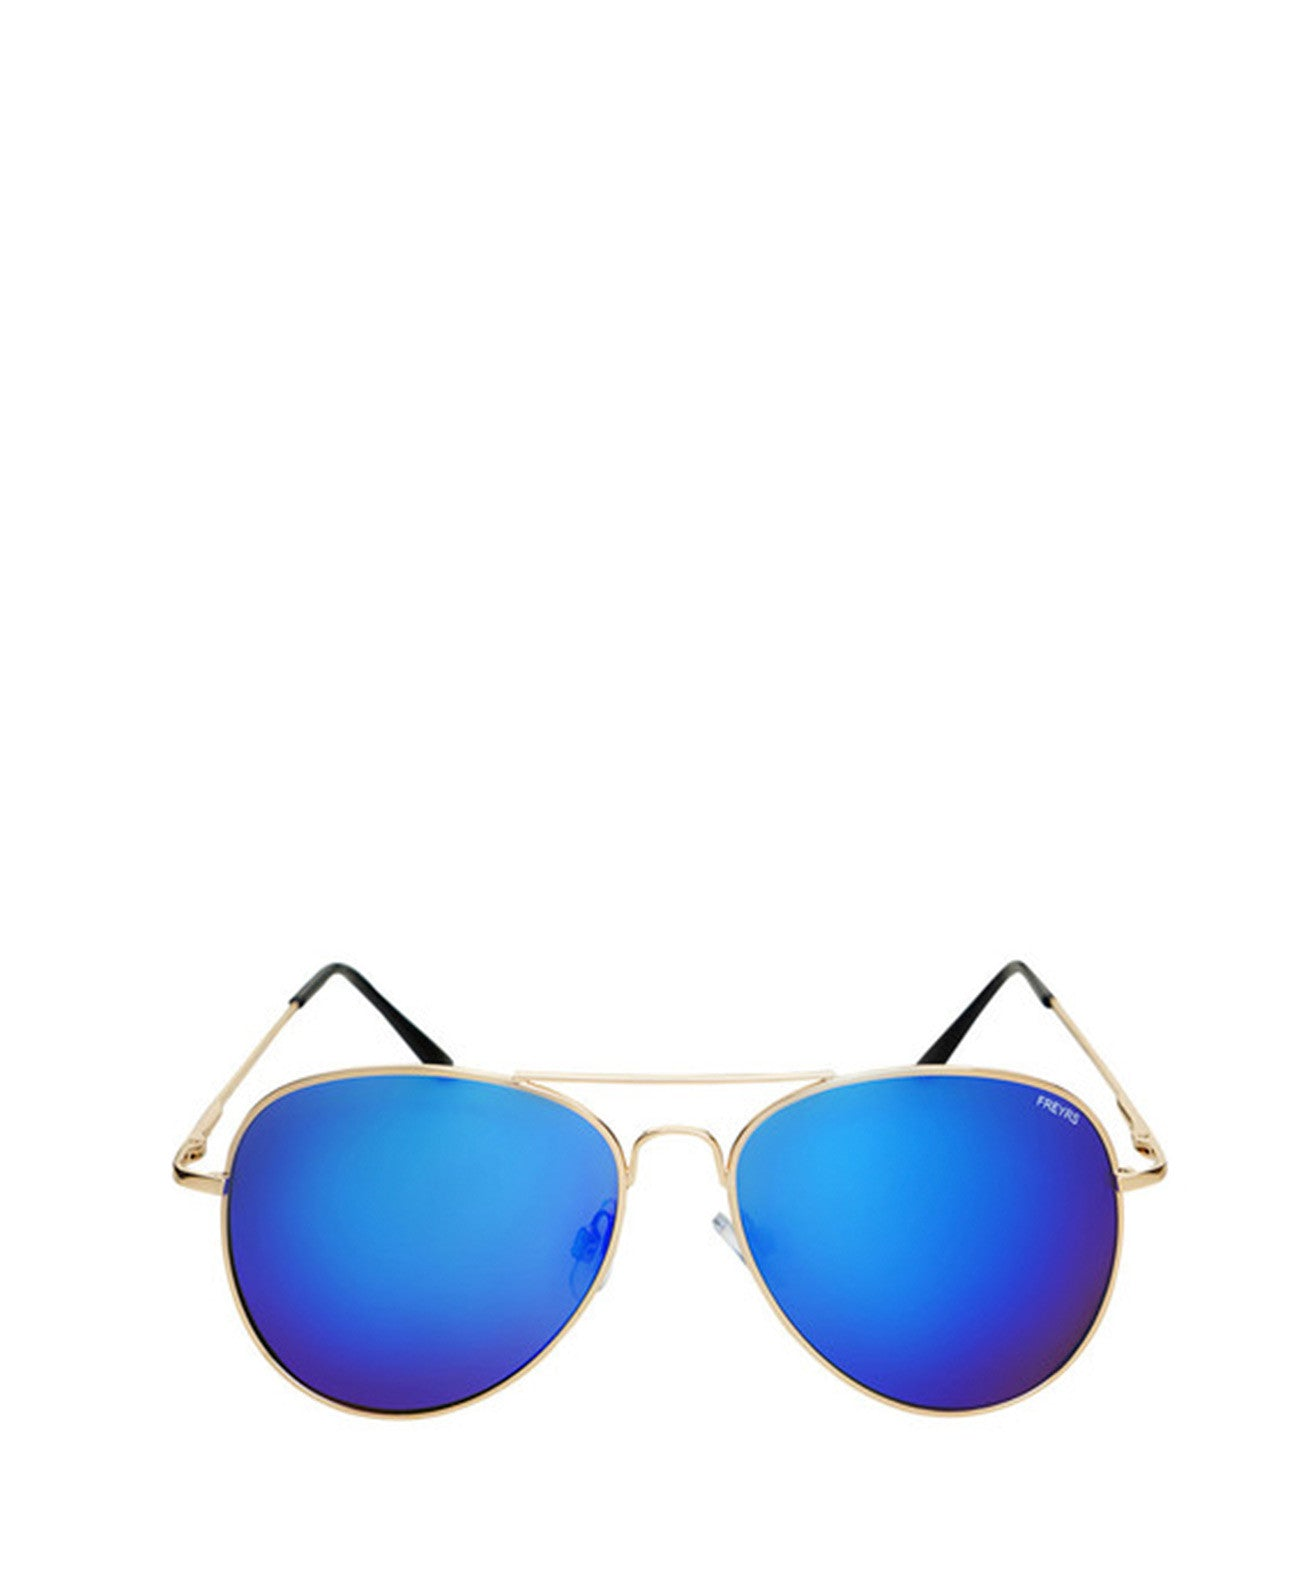 Barry Mirror Aviator Sunglasses - Koko & Palenki